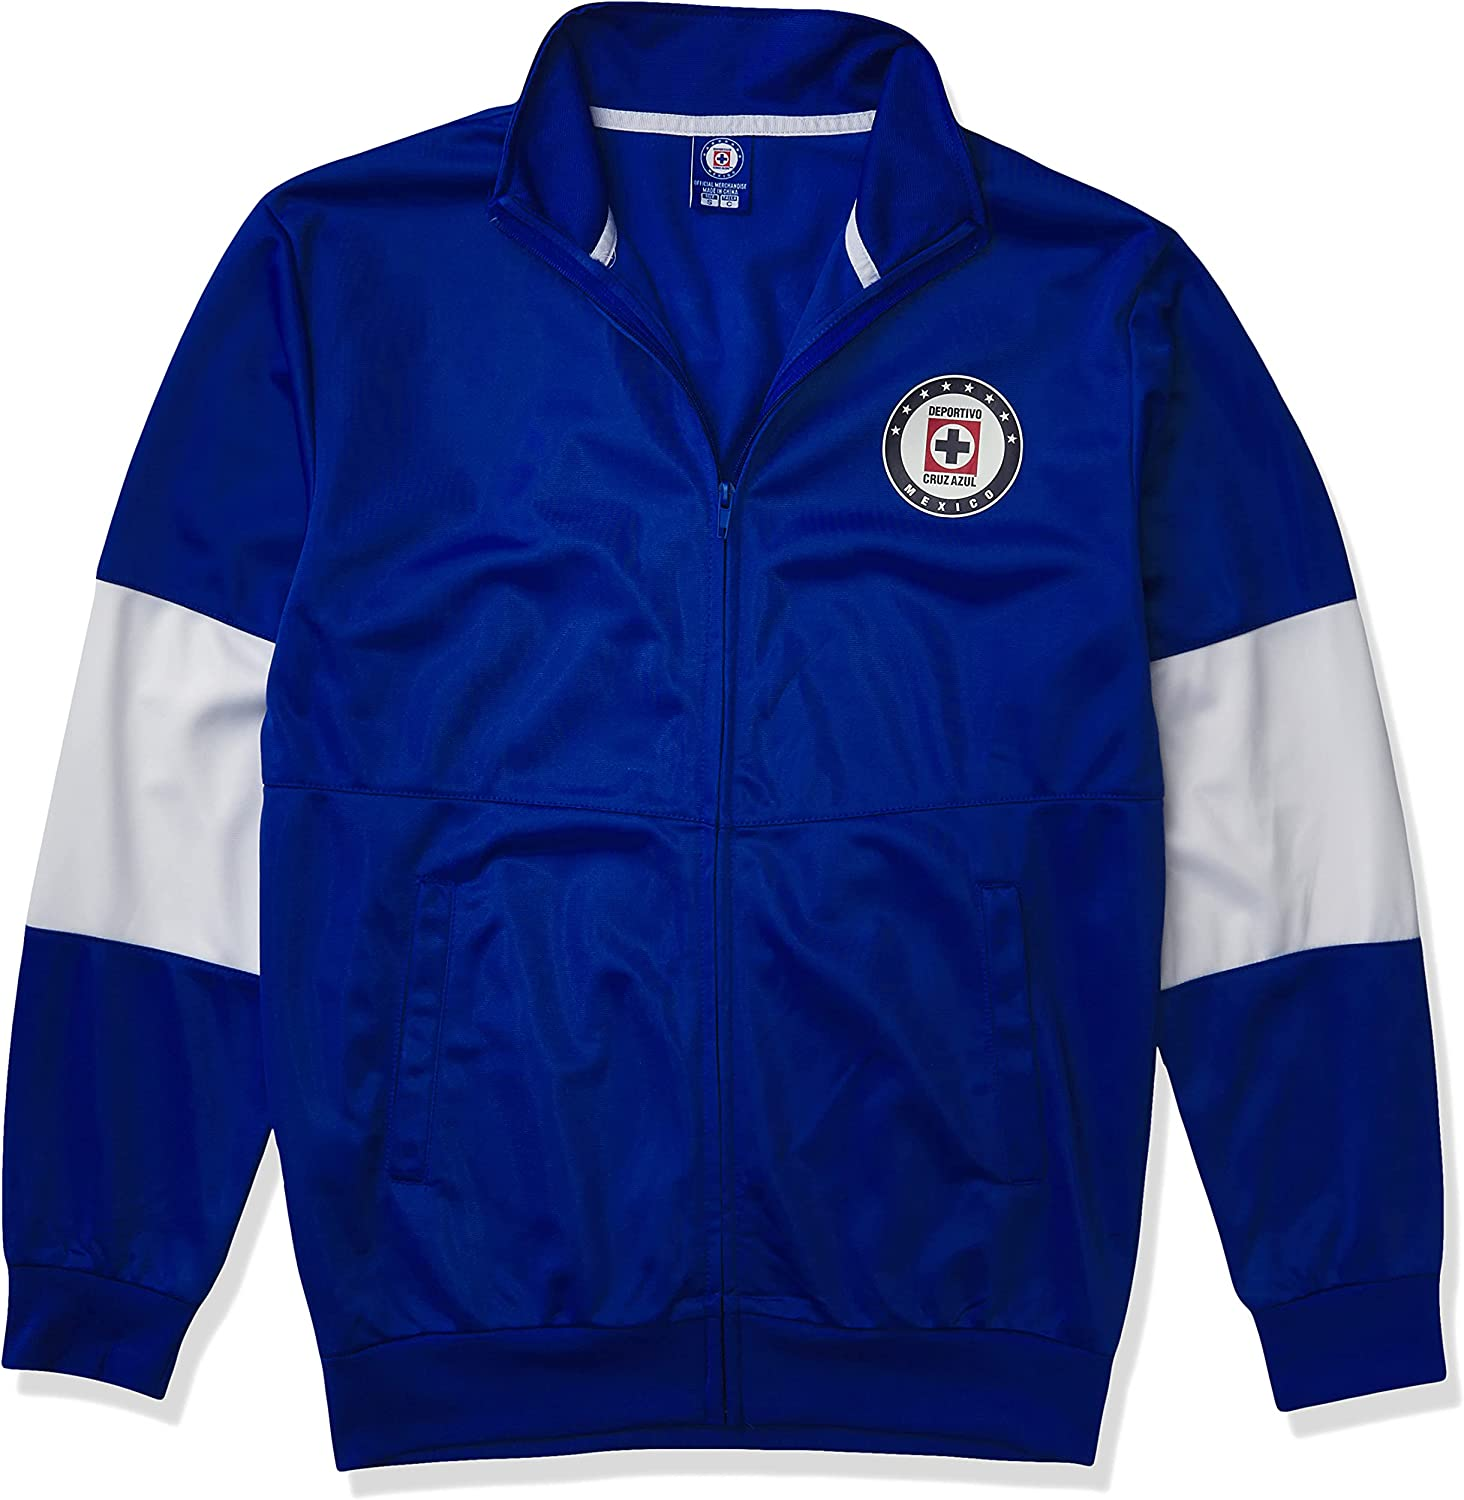 Excellent Chivas de Guadalajara Officially Track Jacket Adult Licensed Dealing full price reduction